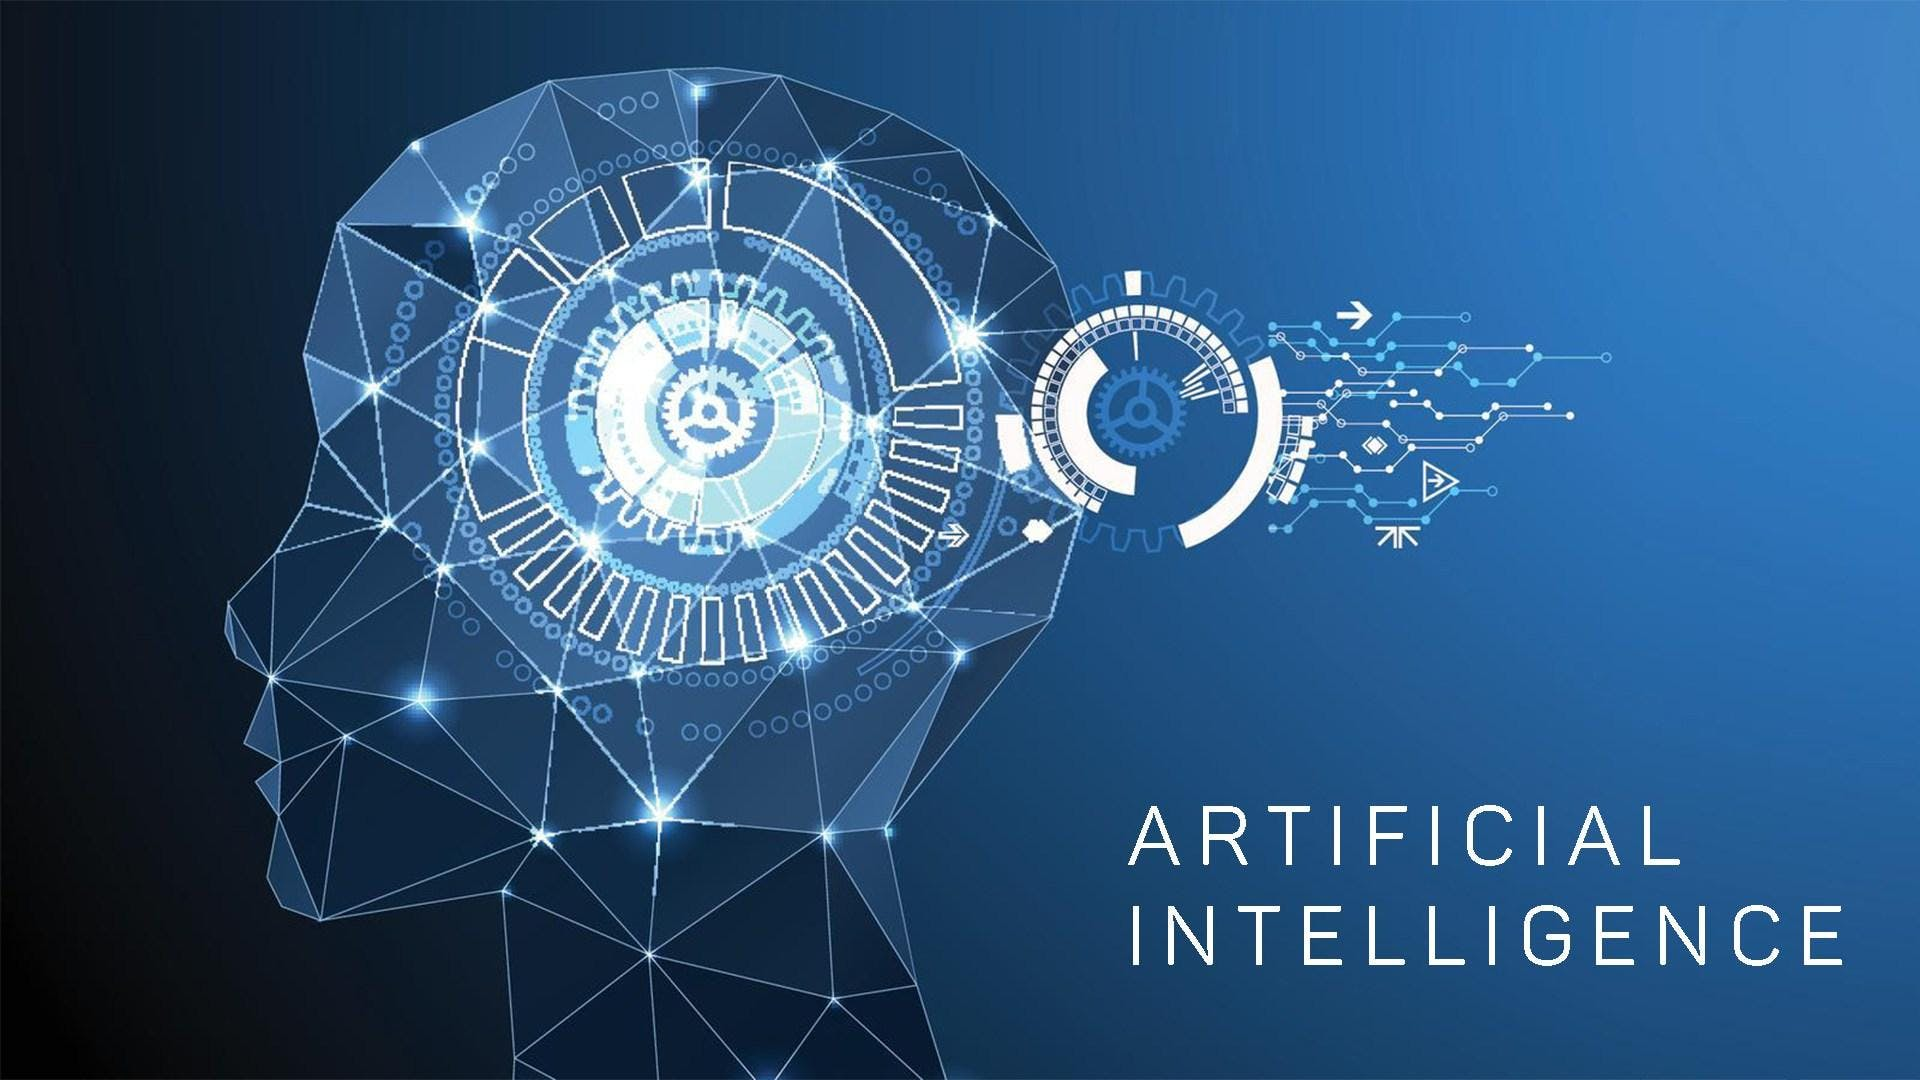 Develop a Successful Artificial Intelligence Tech Entrepreneur Startup Business Today! Phoenix - AI - Entrepreneur - Workshop - Hackathon - Bootcamp - Virtual Class - Seminar - Training - Lecture - Webinar - Conference - Course